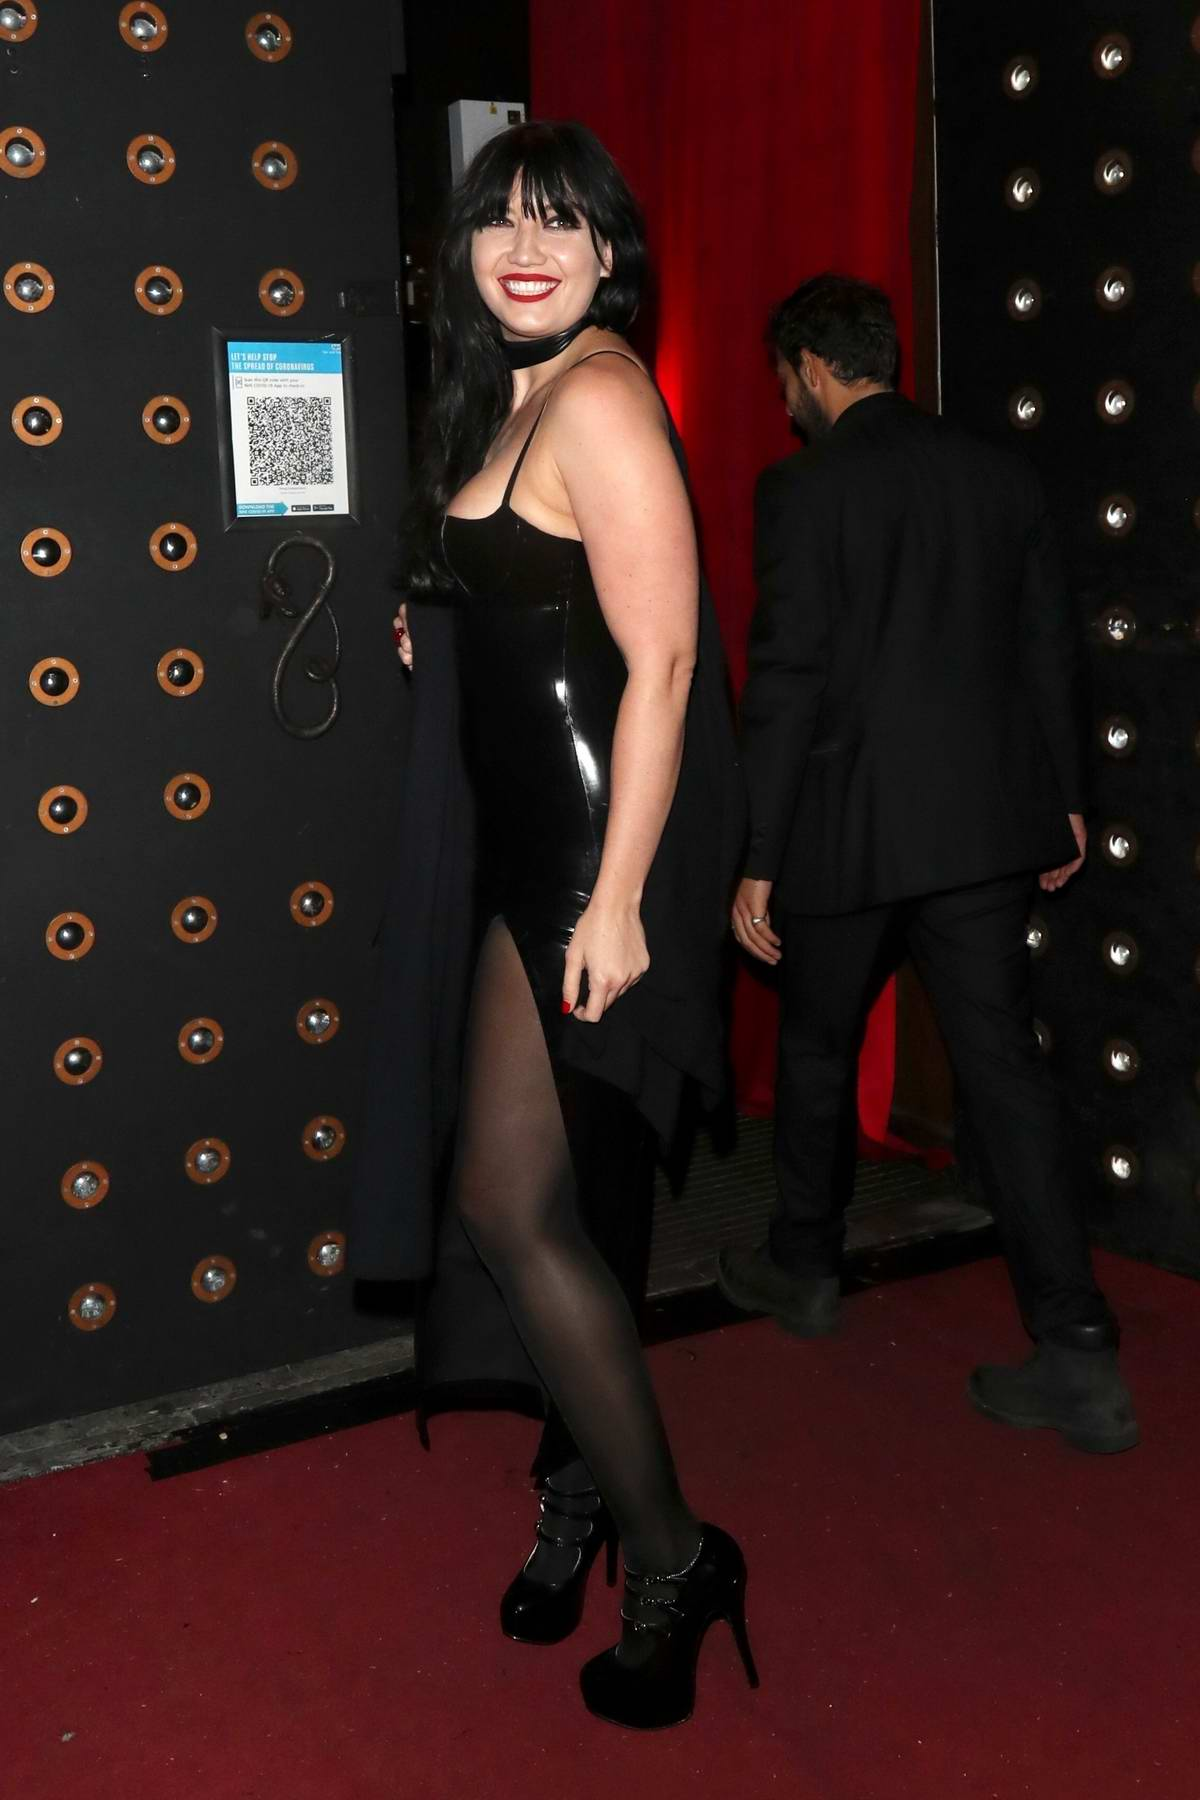 Daisy Lowe dons a black latex dress while arriving for an All Star Cabaret Halloween night at Proud Embankment in London, UK